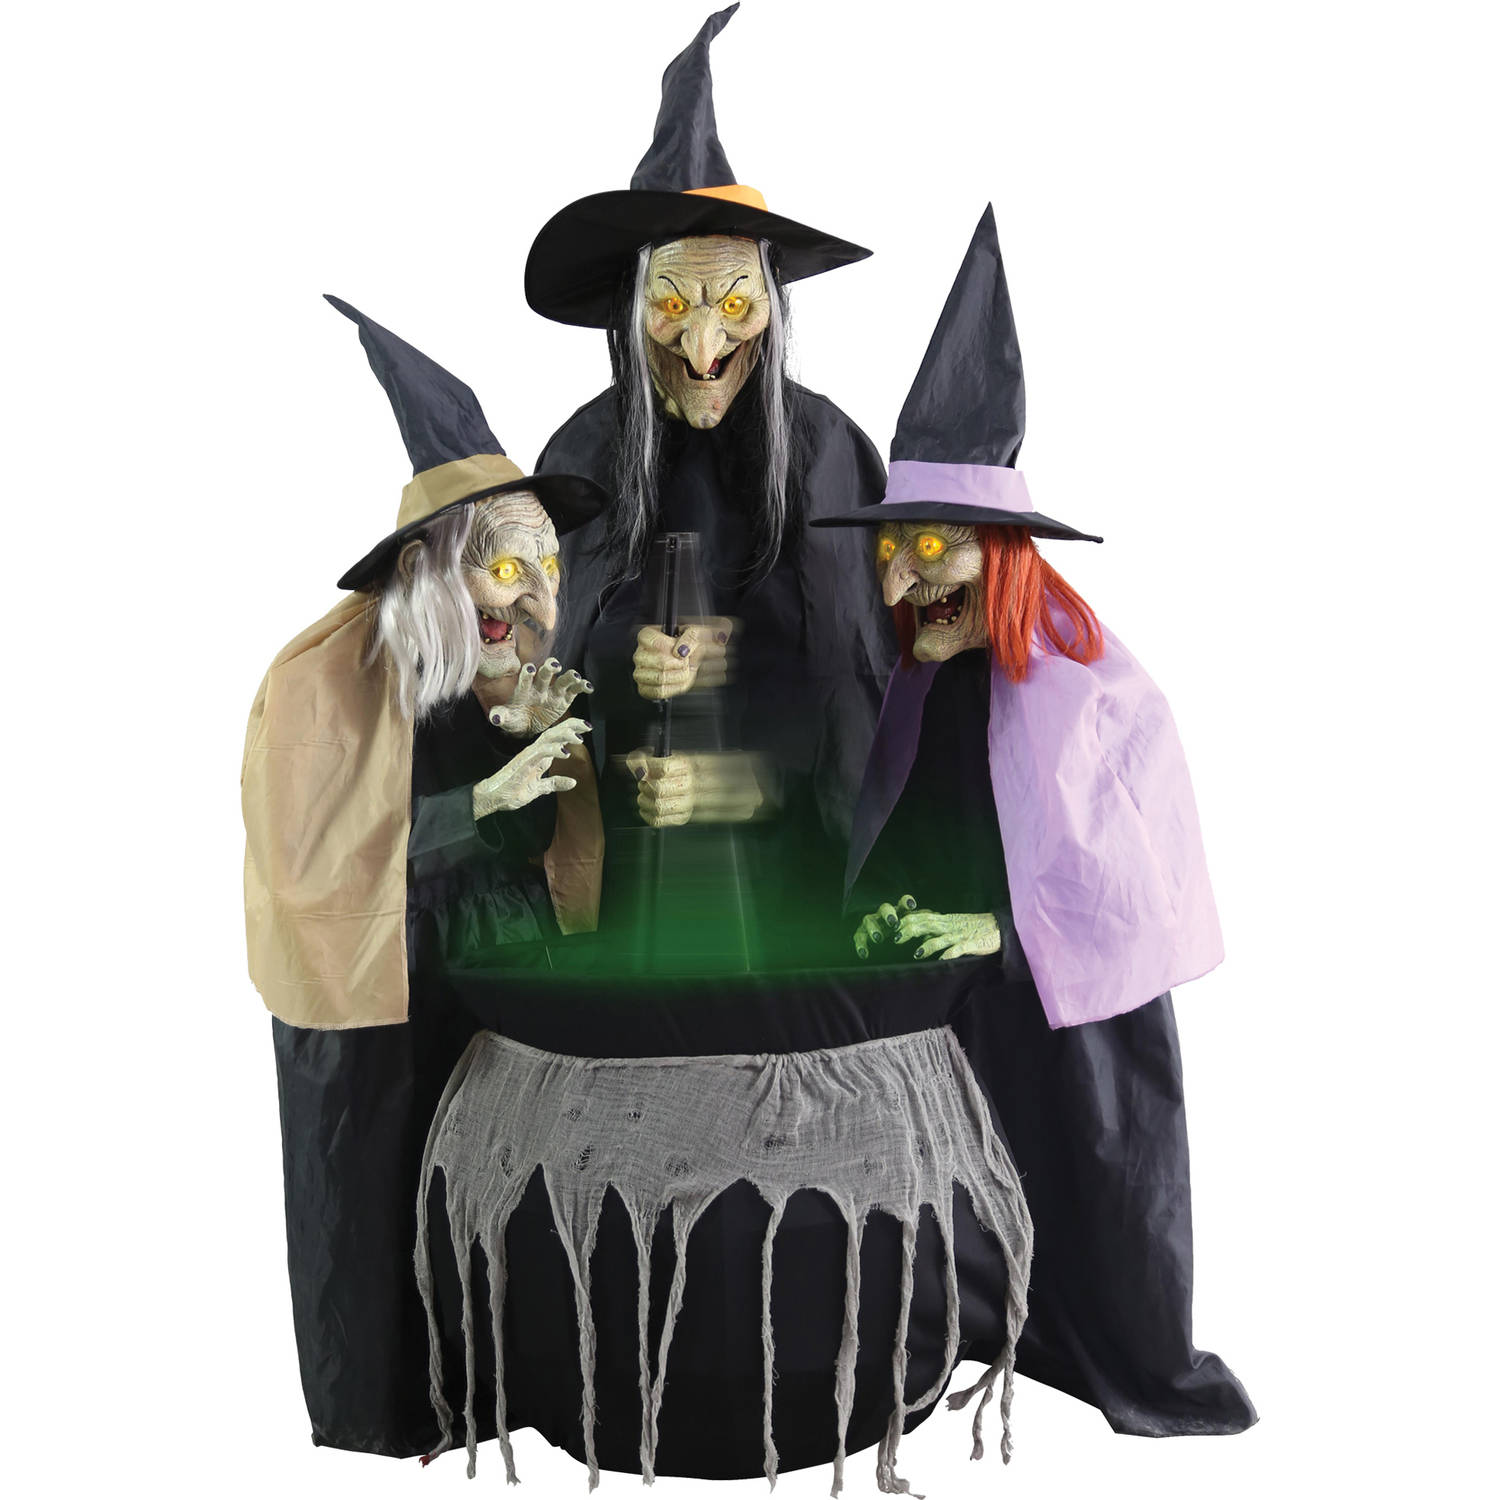 stitch witch sisters animated halloween decoration walmartcom - Animated Halloween Decorations